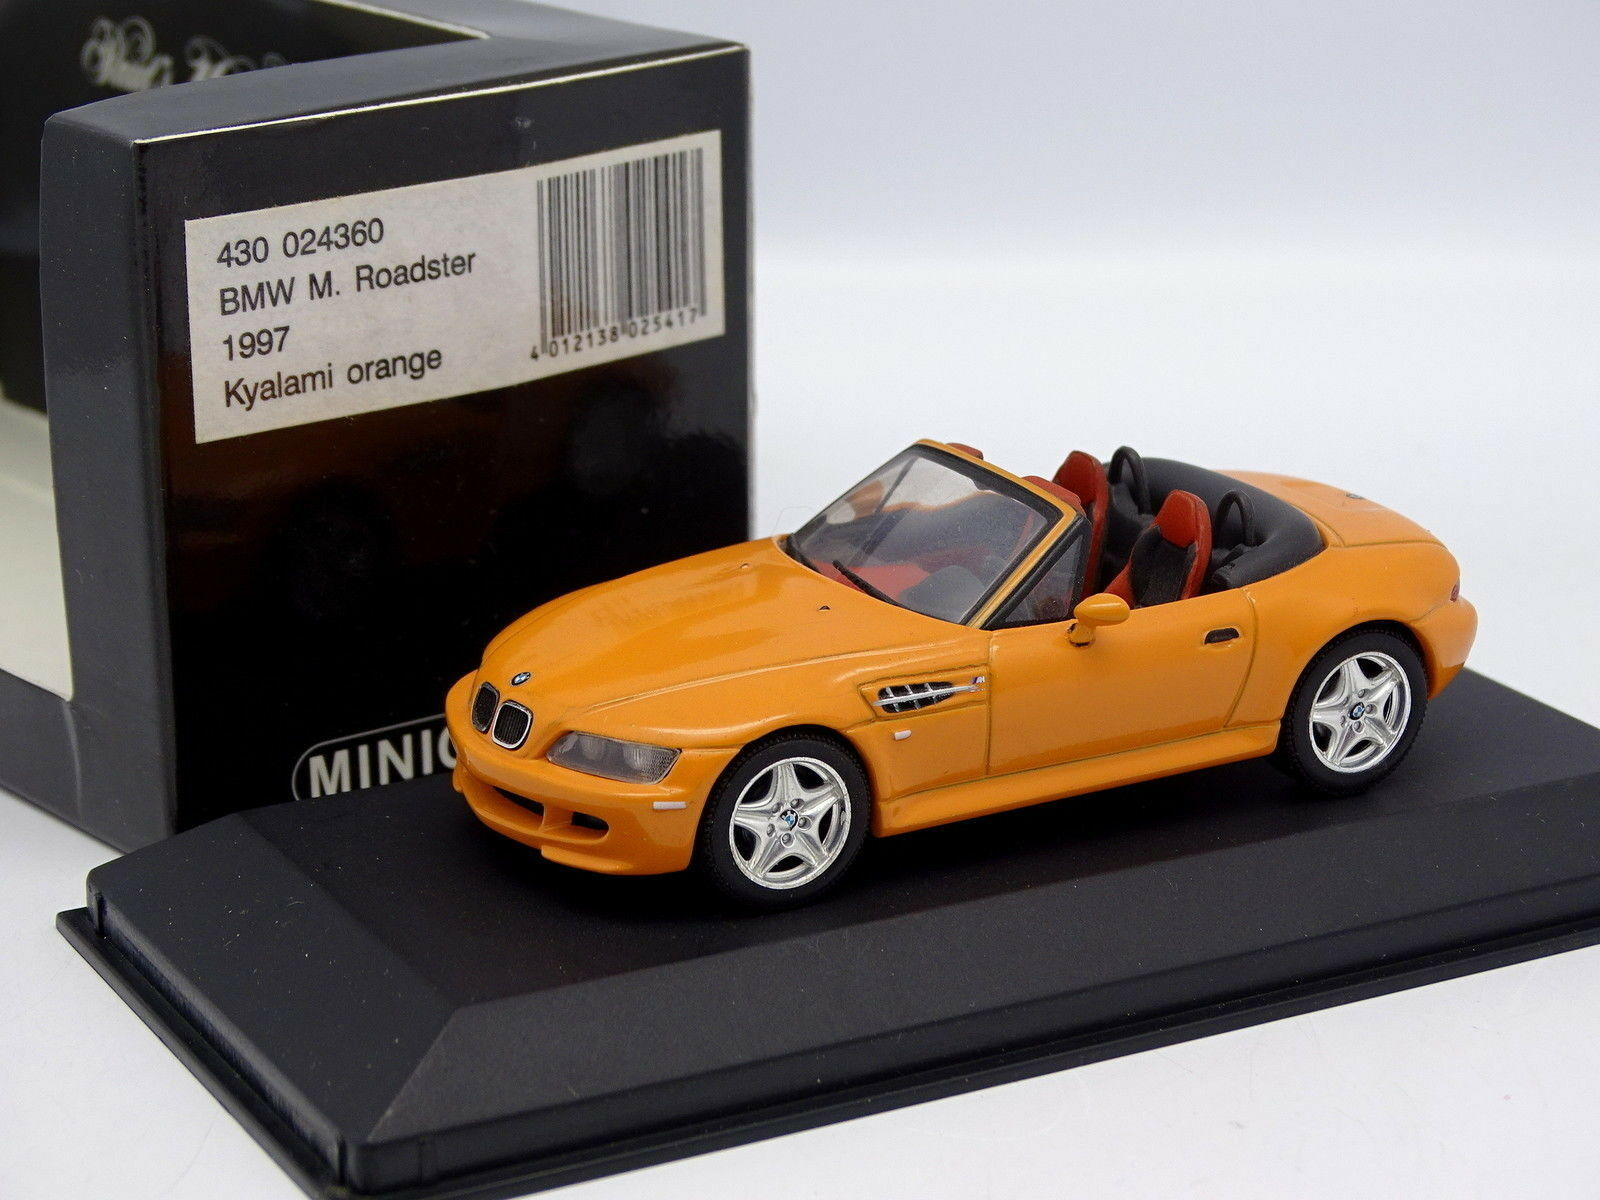 Minichamps 1  43 - BMW M Roadster Kyalami orange (pik nic)